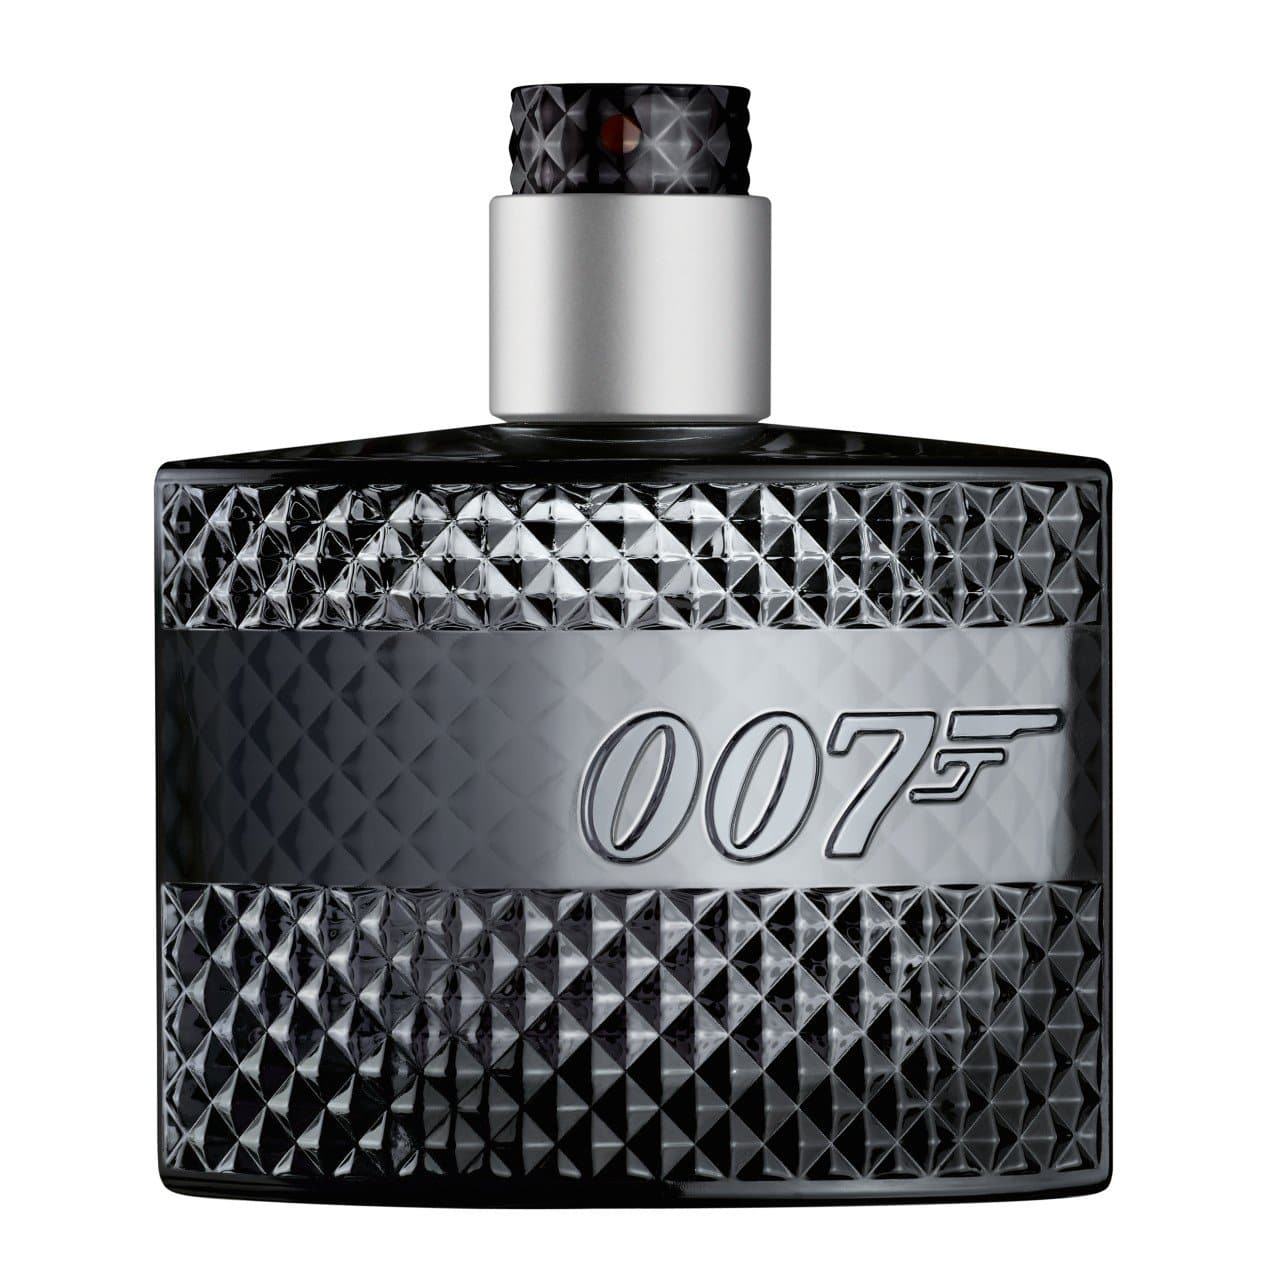 James Bond 007 Signature For Men Eau De Toilette Fragrance (50ml) - 007STORE